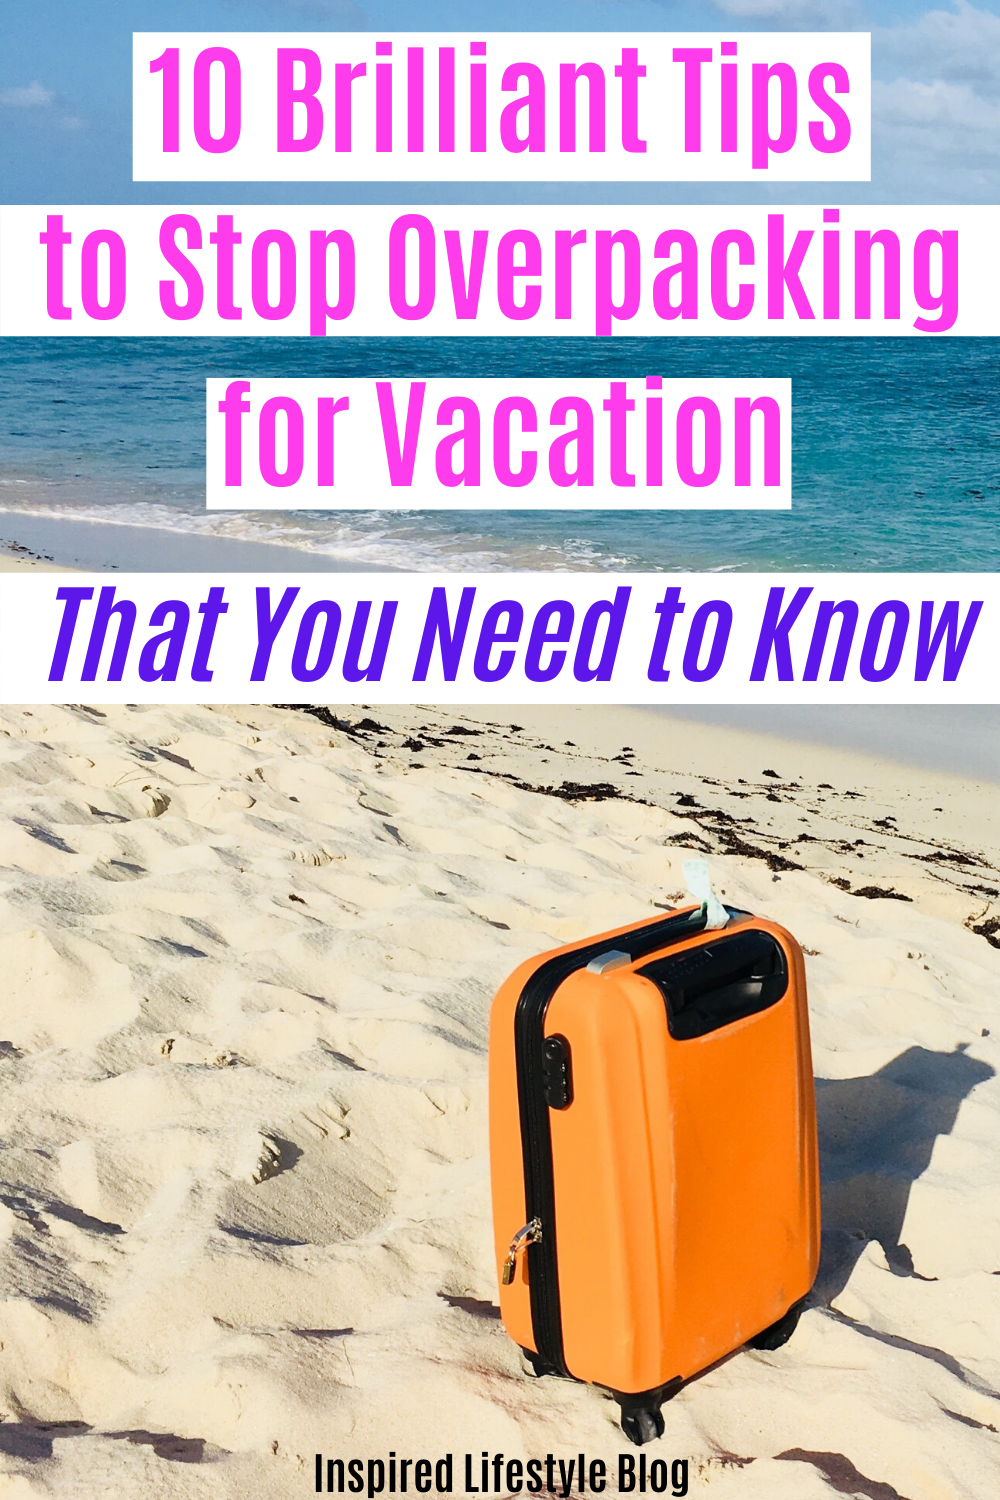 10 Brilliant Tips to Stop Overpacking for Vacation That